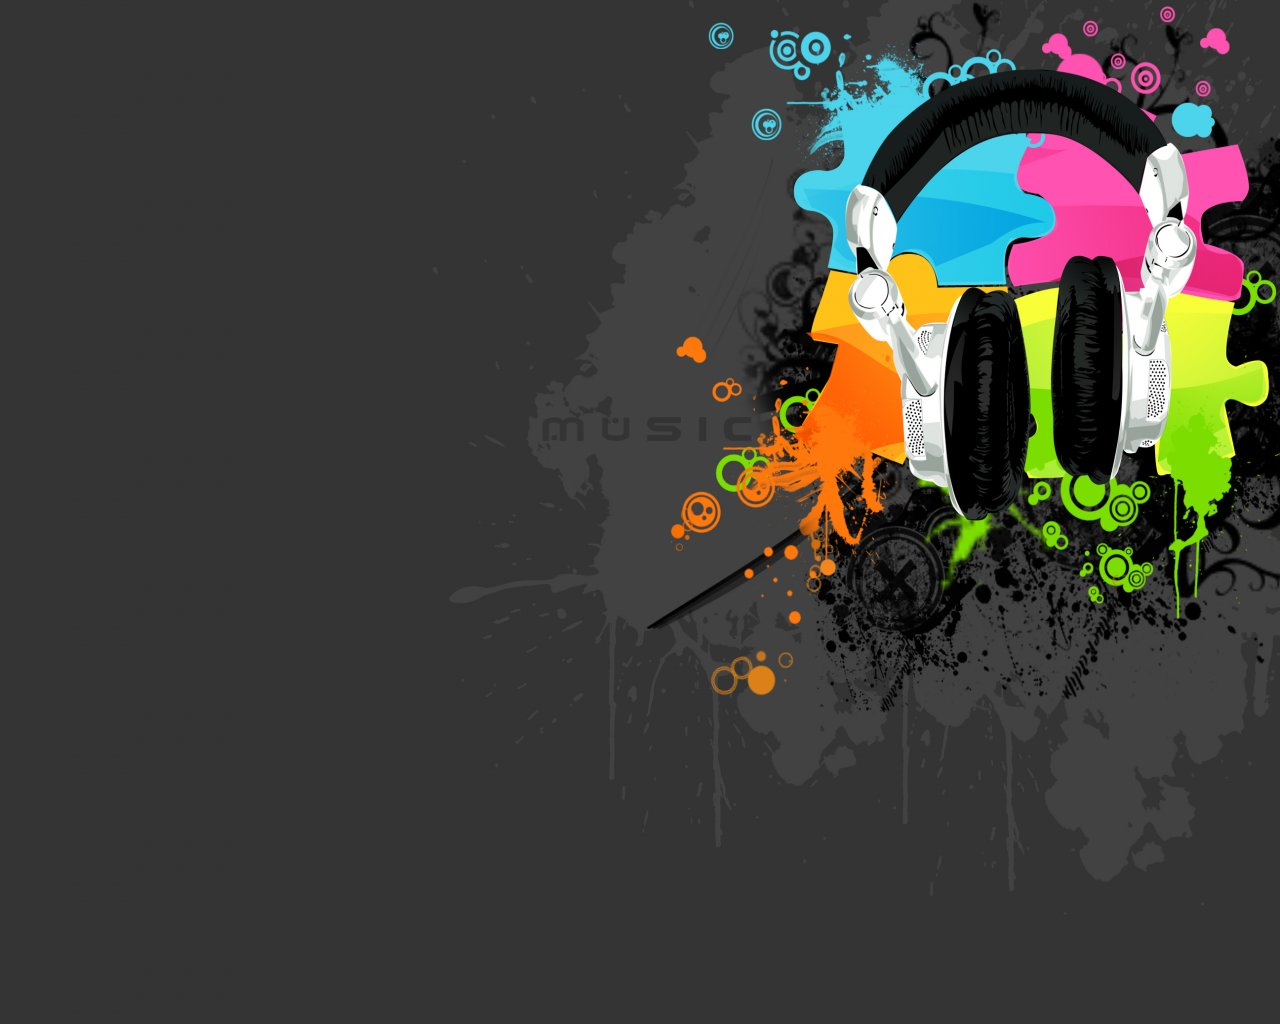 Free 3D Wallpapers Download: Music hd wallpaper, music ...